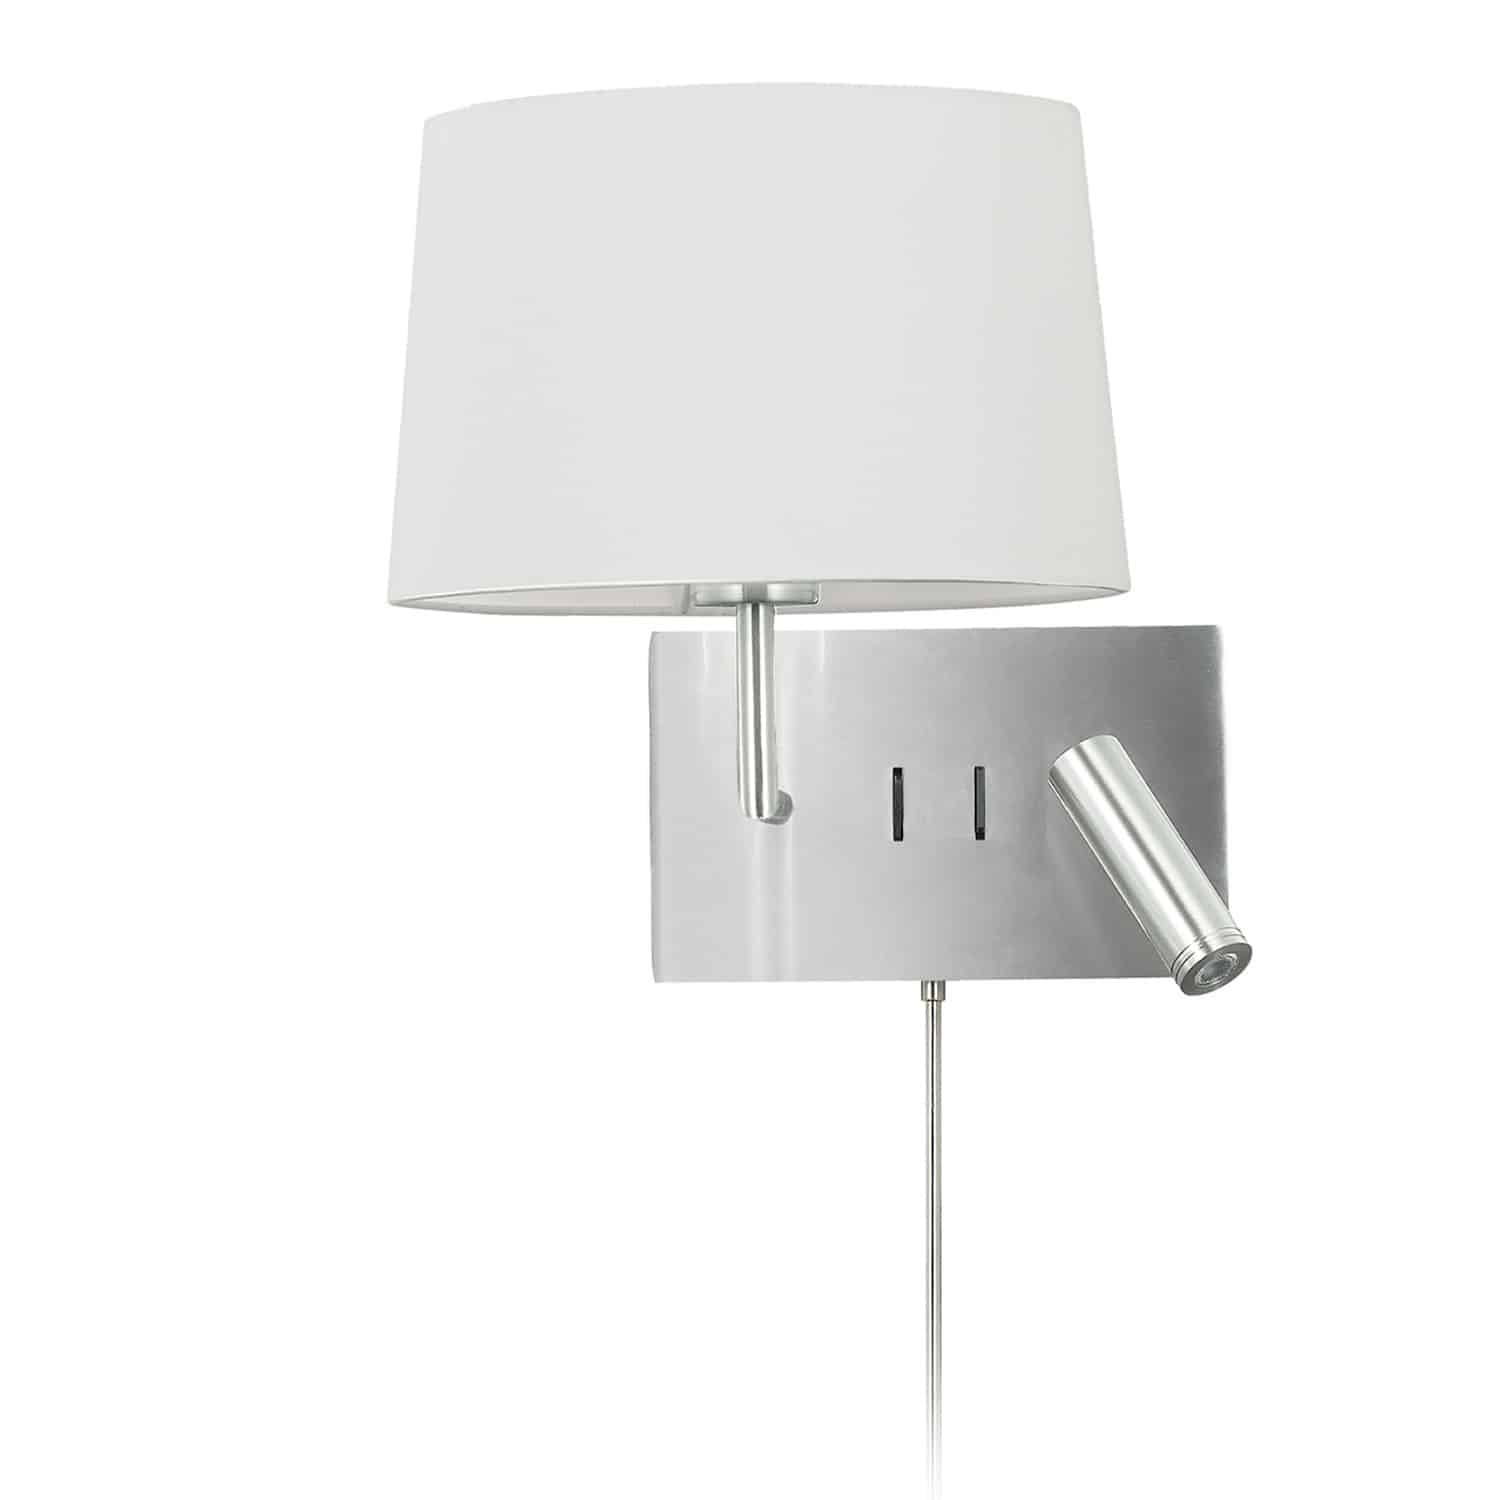 1 Light Incandescent Wall Scone with 3W Reading Light , Satin Chrome with White Shade